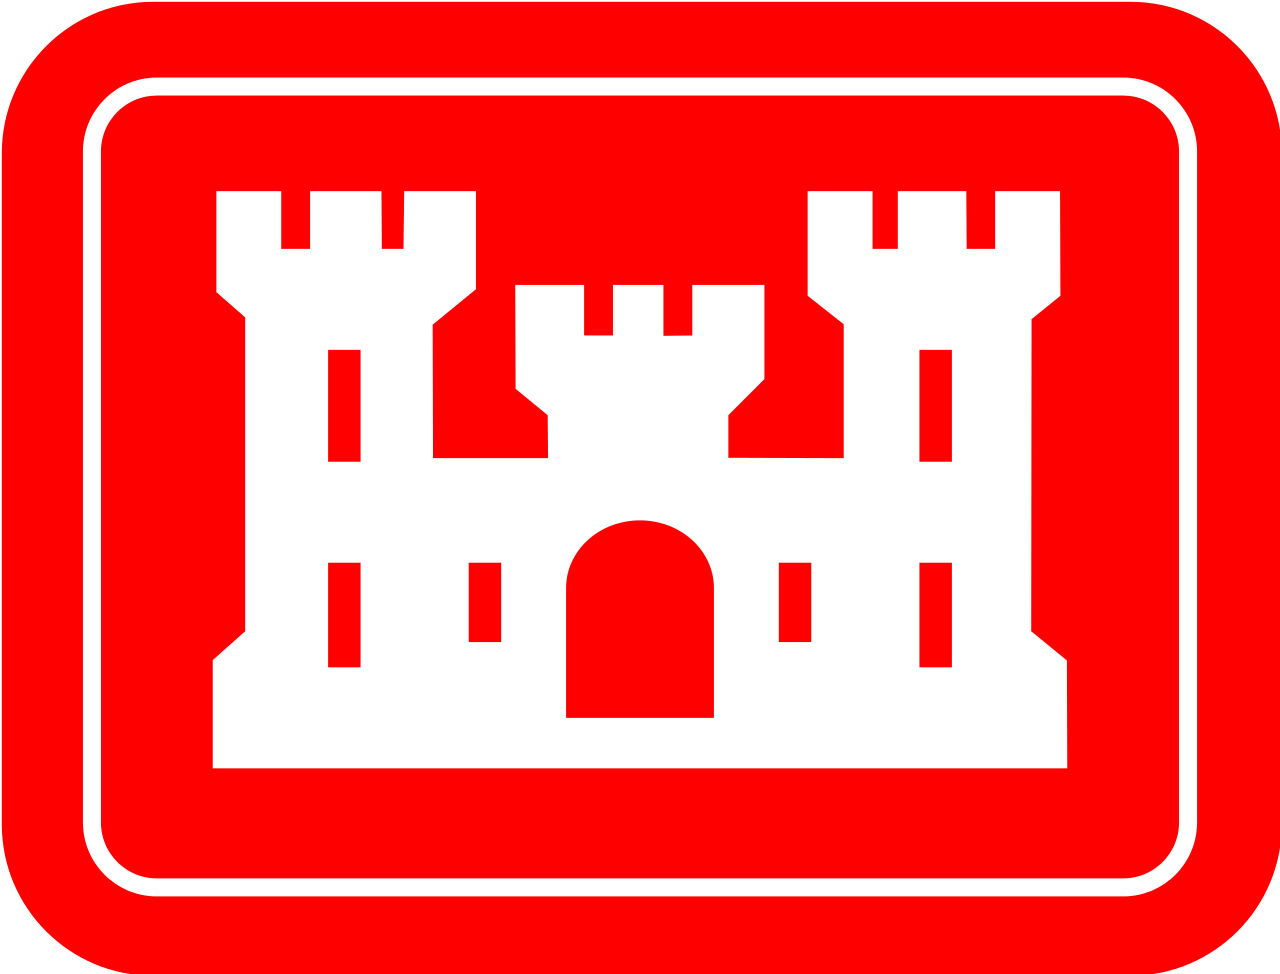 2e1_USACE_clean corners.png